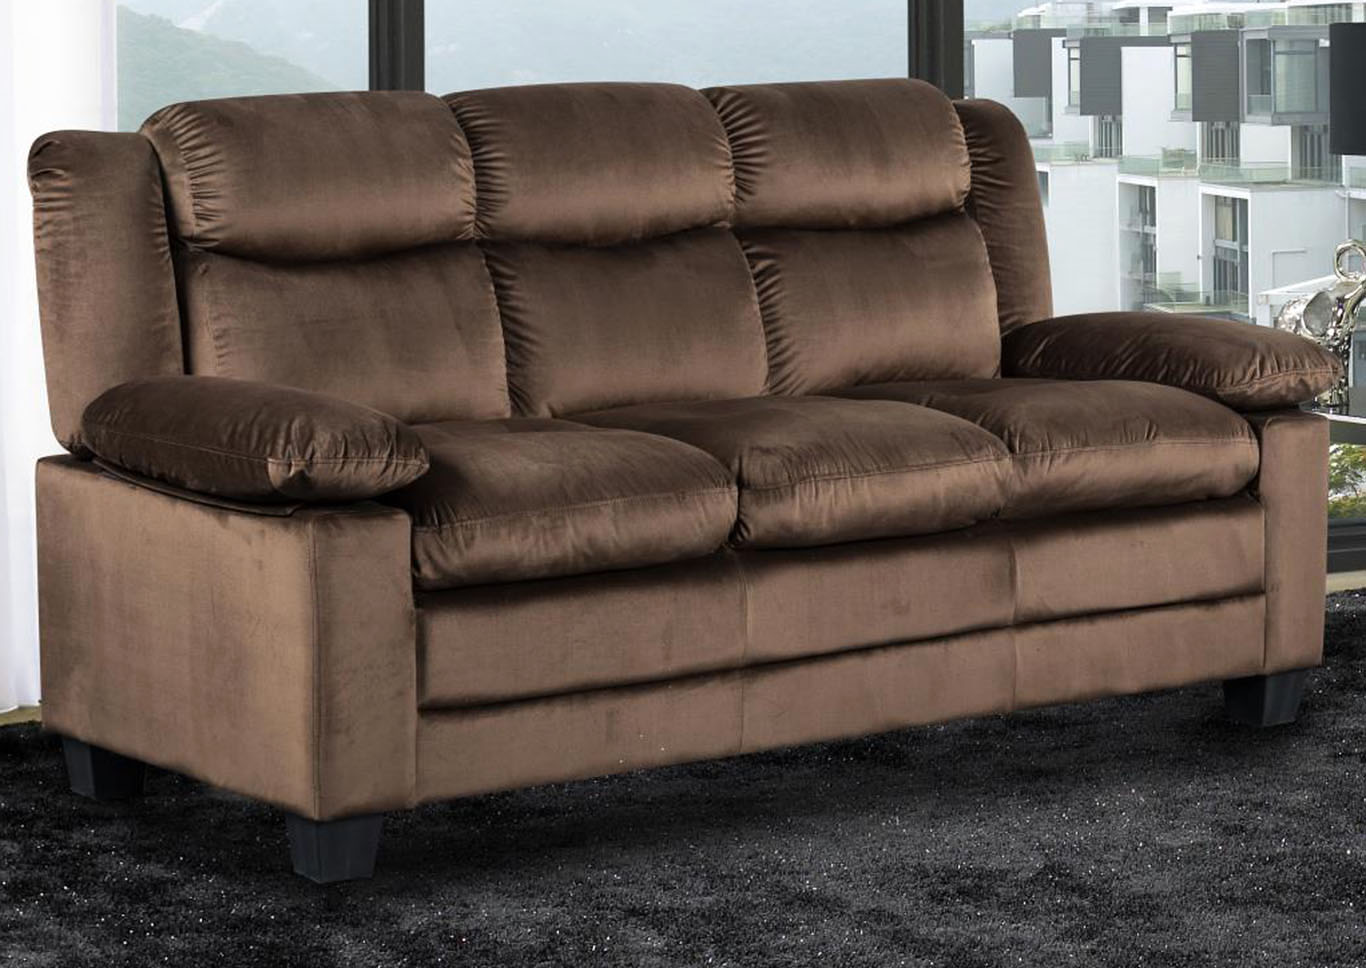 Brown Sofa,Global Trading